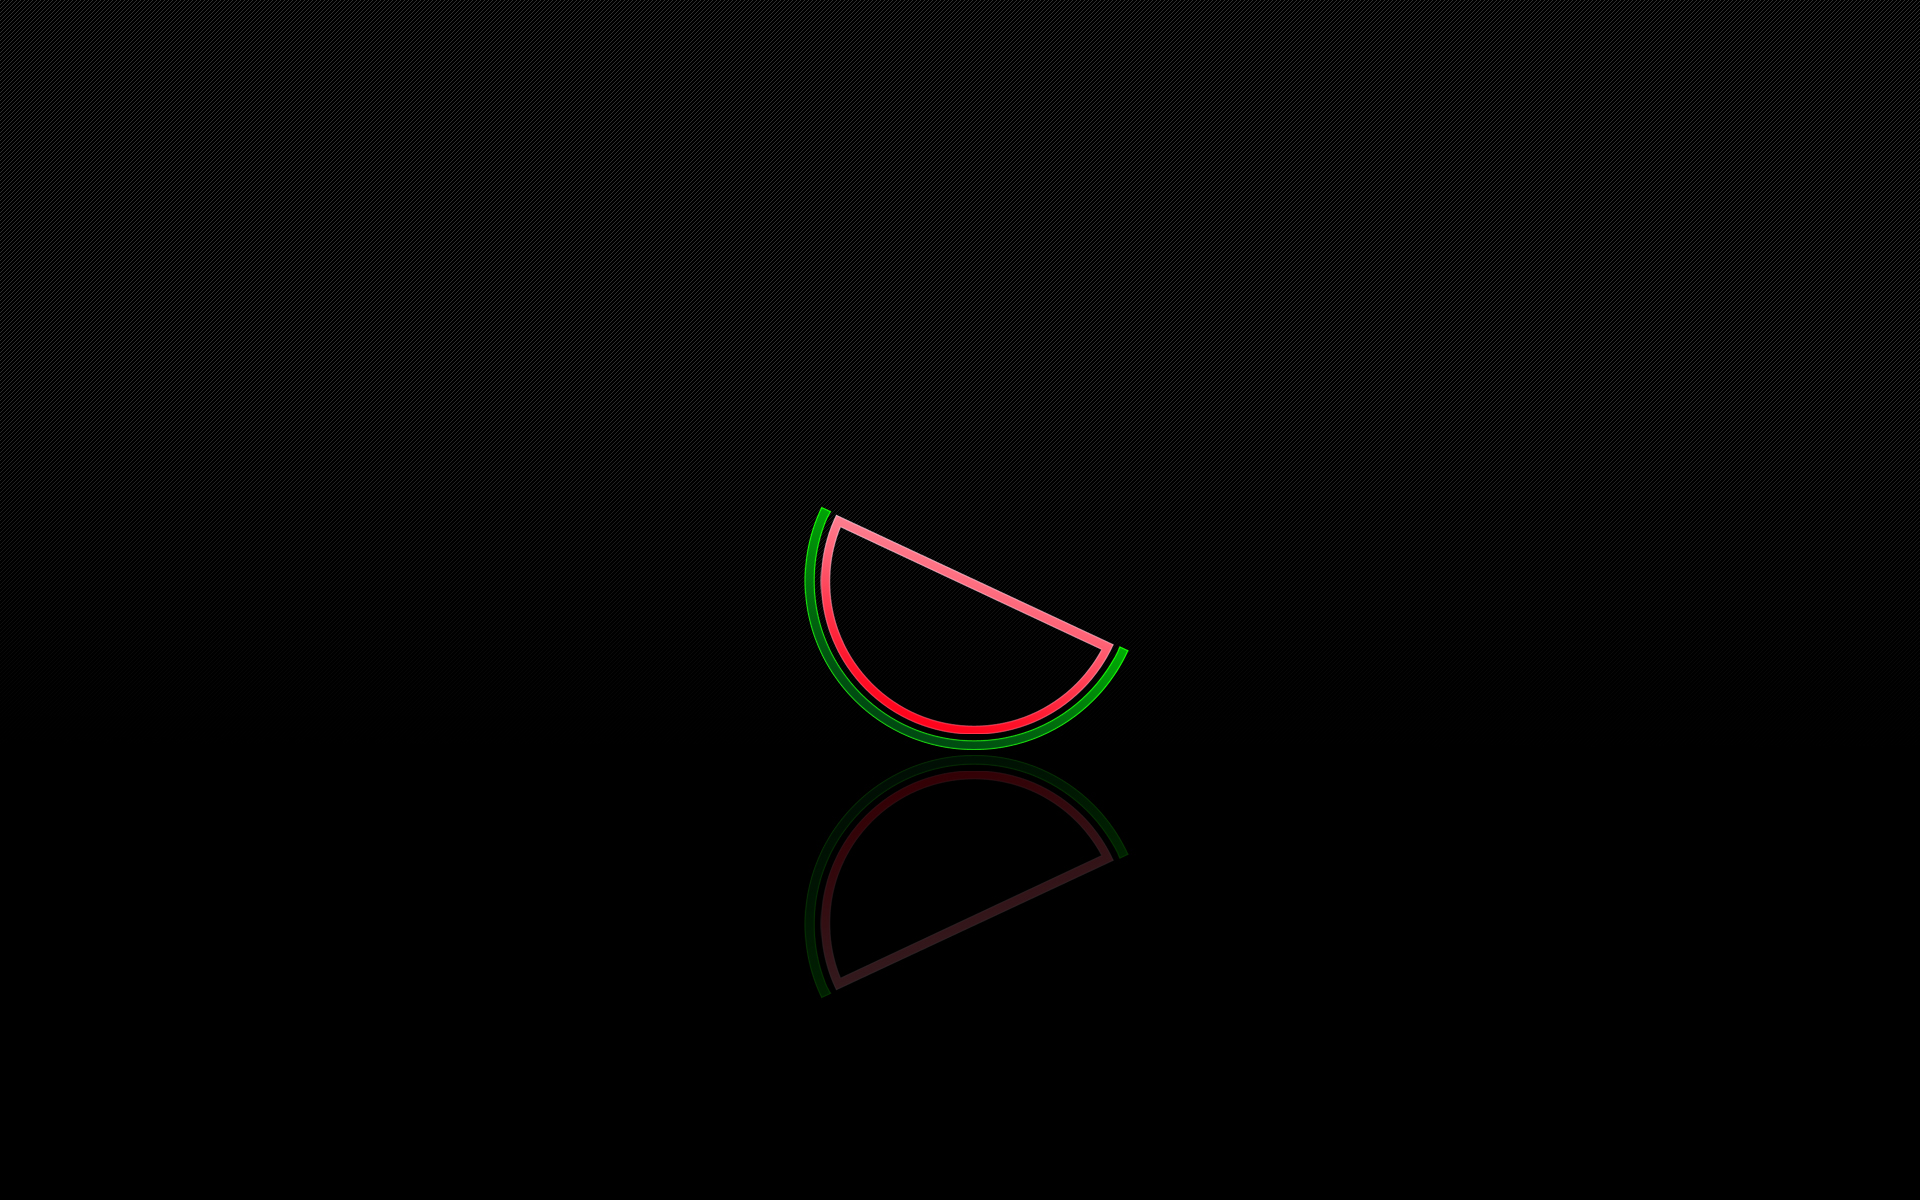 Neon Watermelon Wallpapers Neon Watermelon Myspace Backgrounds Neon 1920x1200